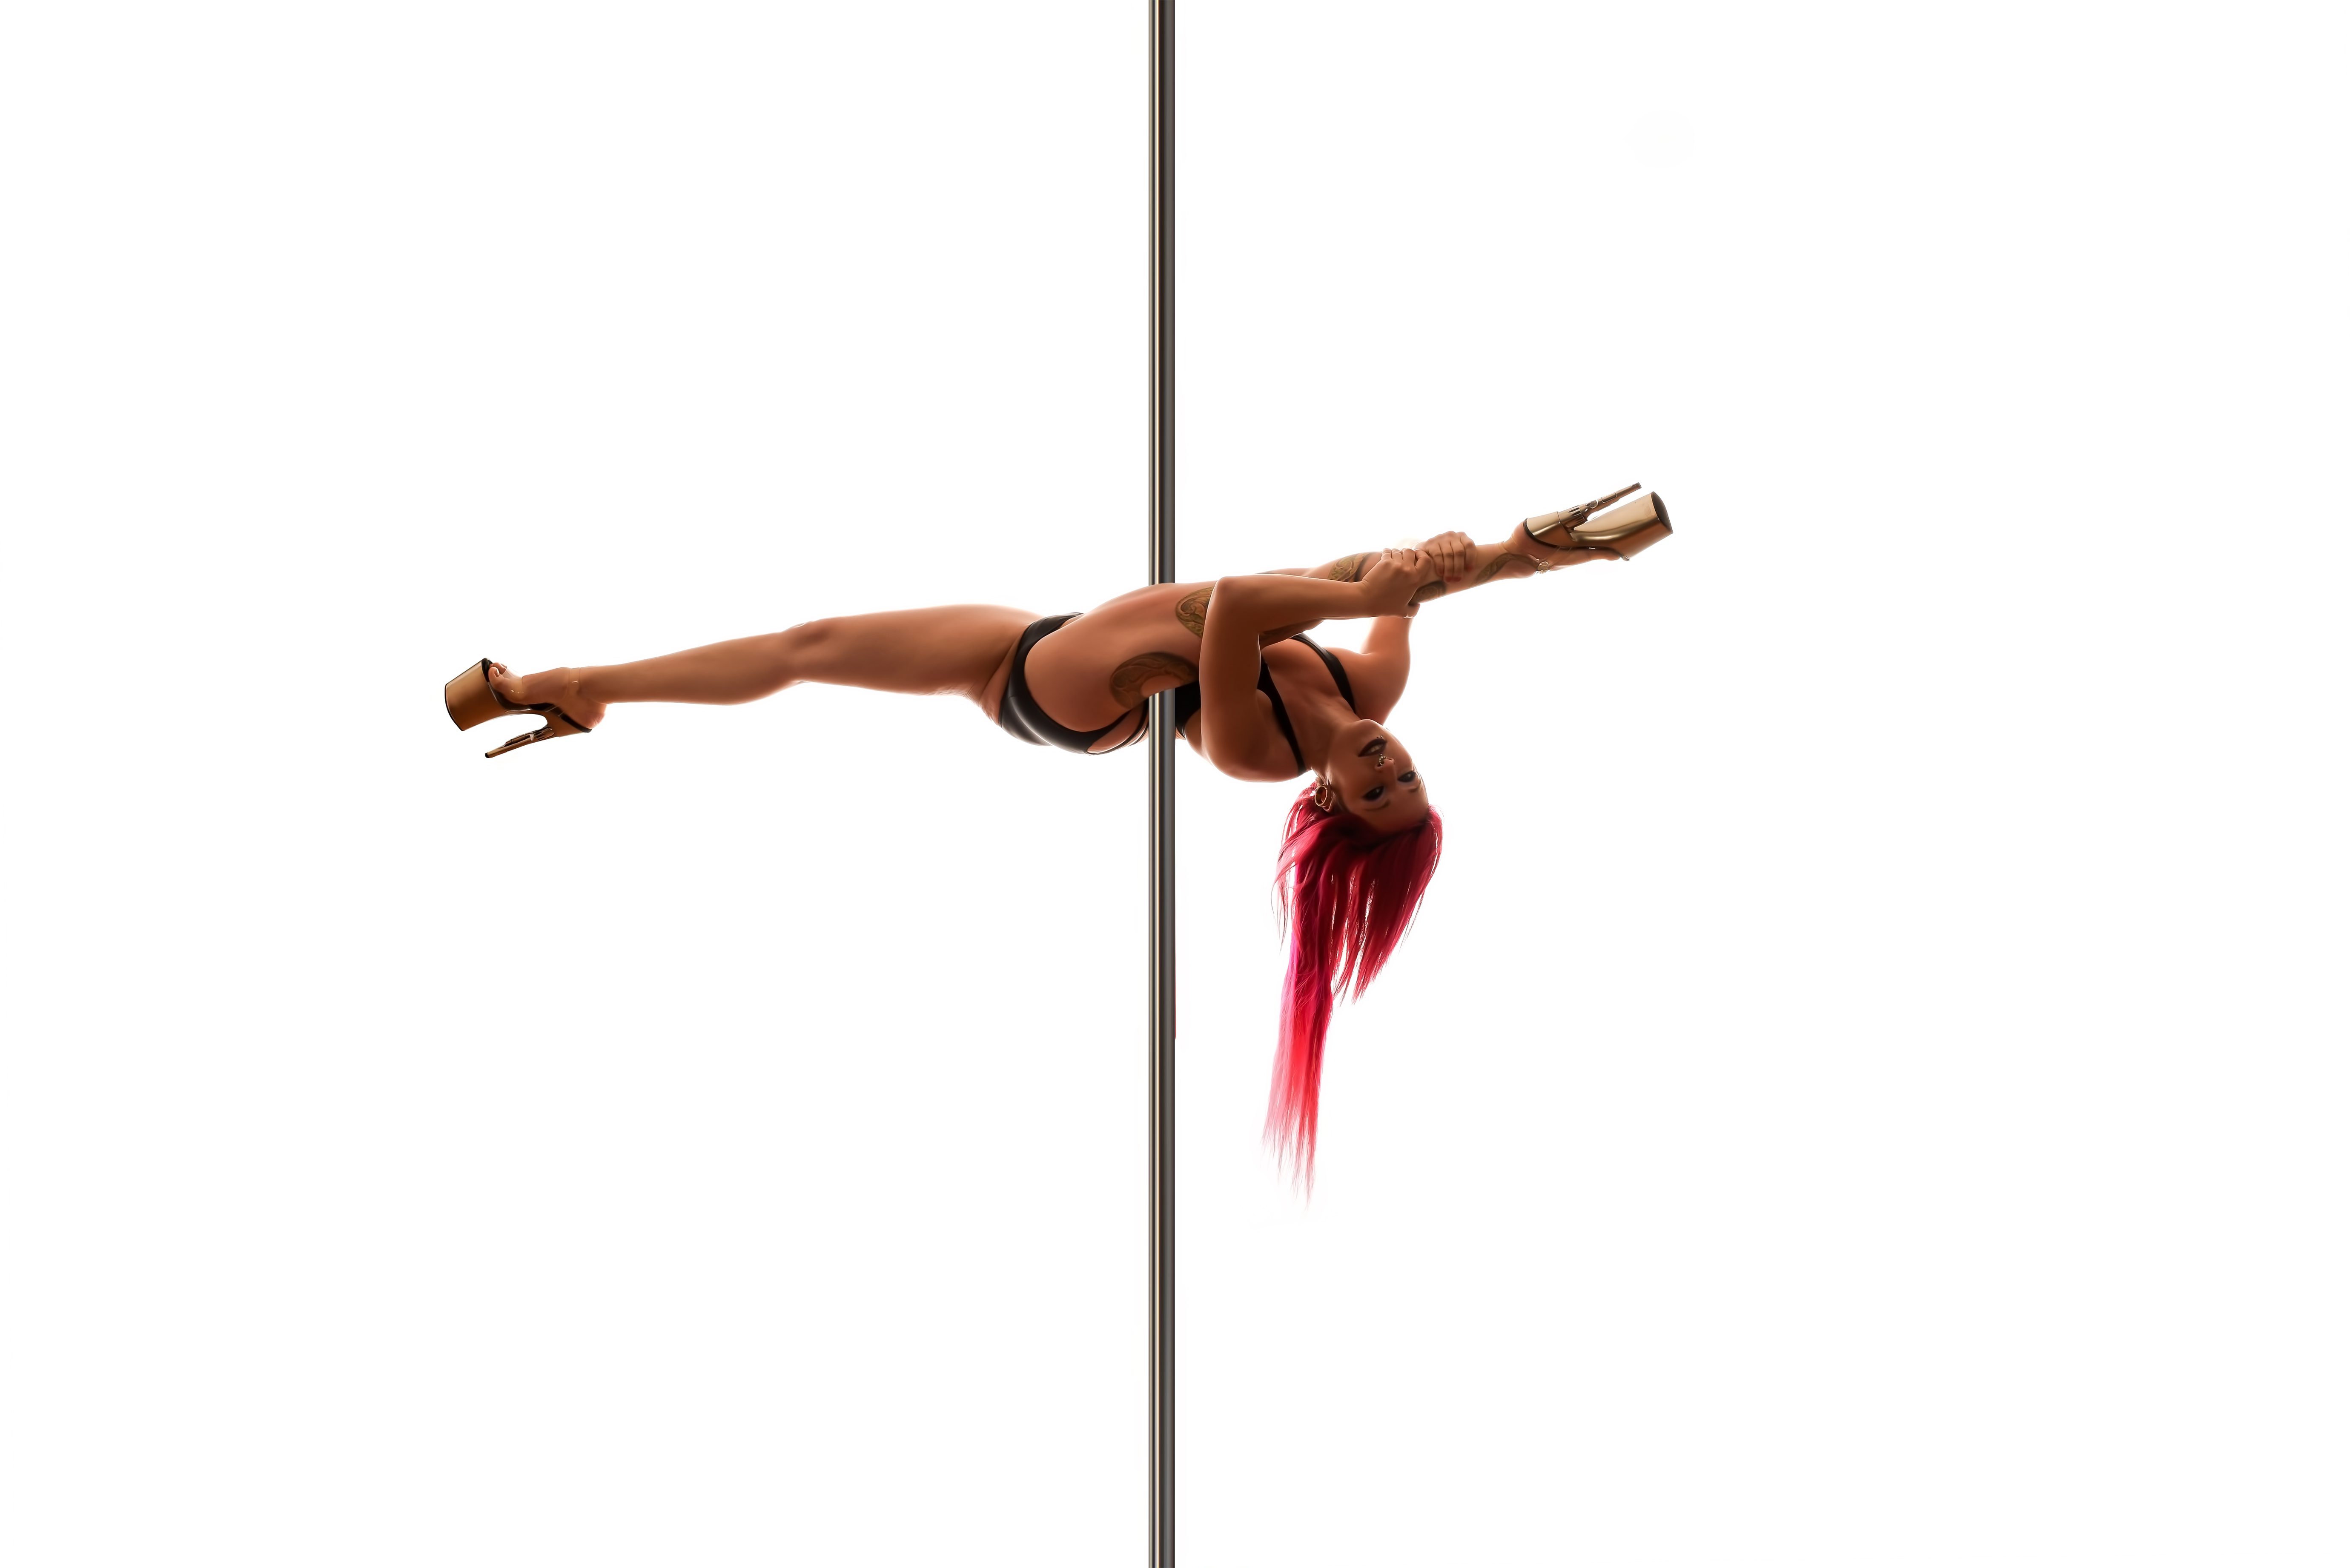 Classes Pole dance, stretching and more Mandy Candy's pole dance studio